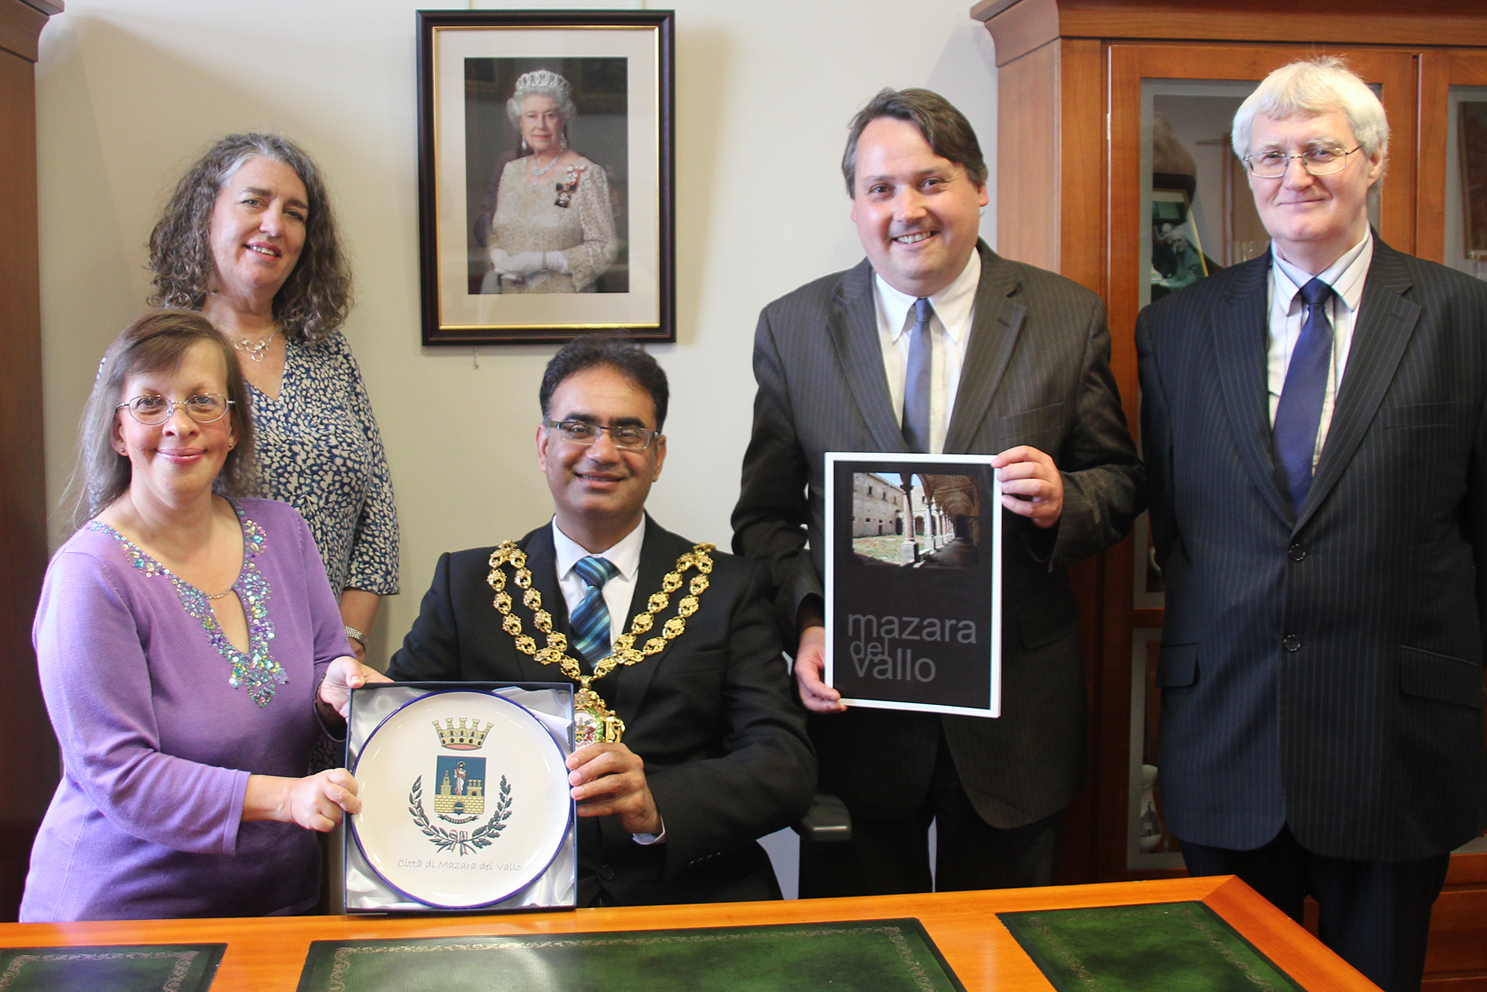 The Mayor of Oldham, Councillor Ateeque Ur-Rehman, presented with the Coat of Arms from Mazara Del Vallo by Peace Talks Oldham members.